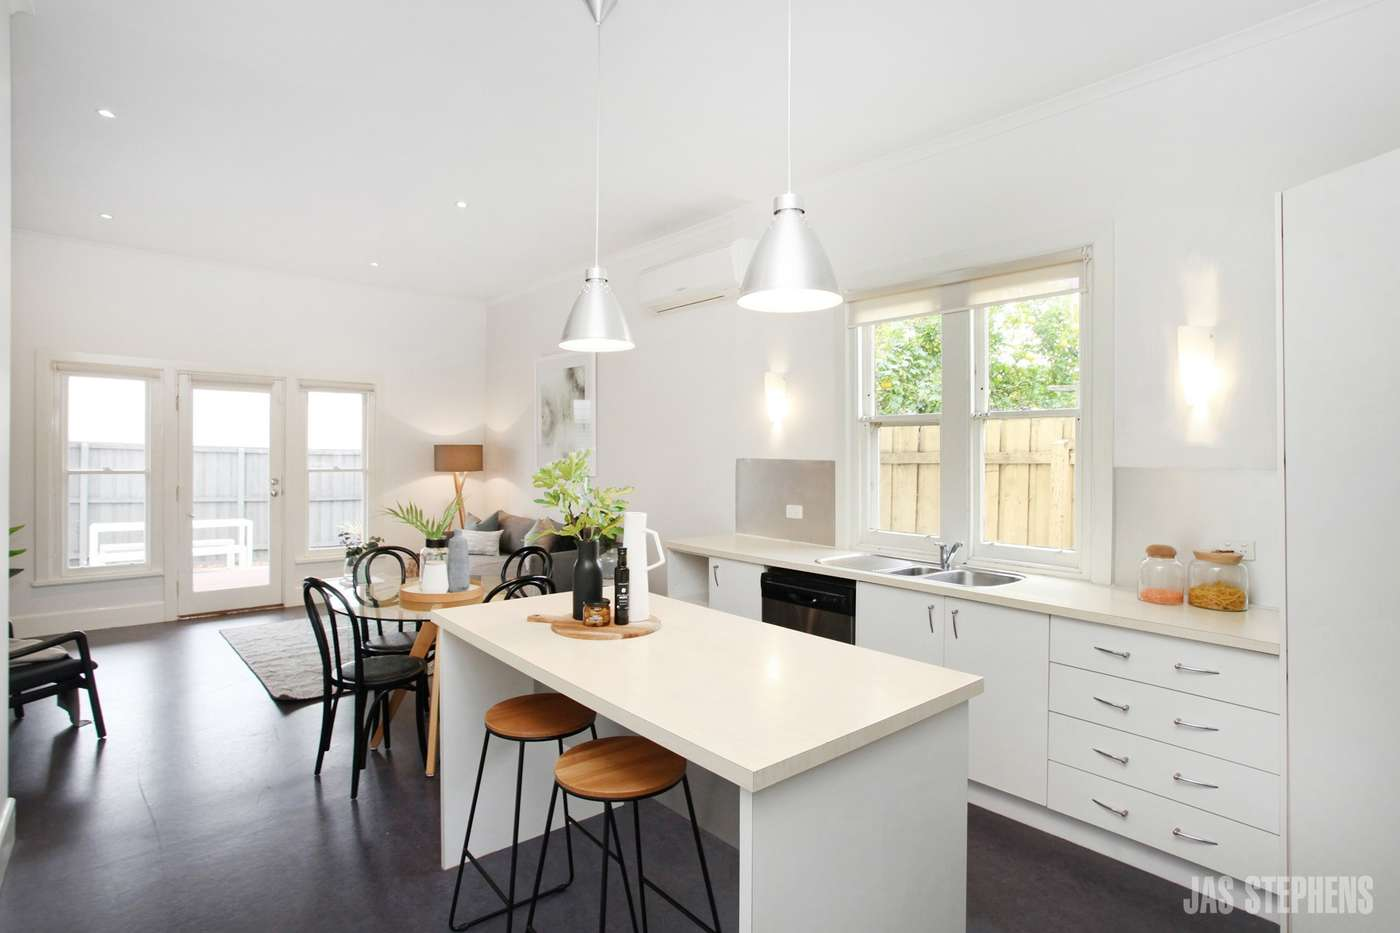 Main view of Homely house listing, 76 Powell Street, Yarraville, VIC 3013